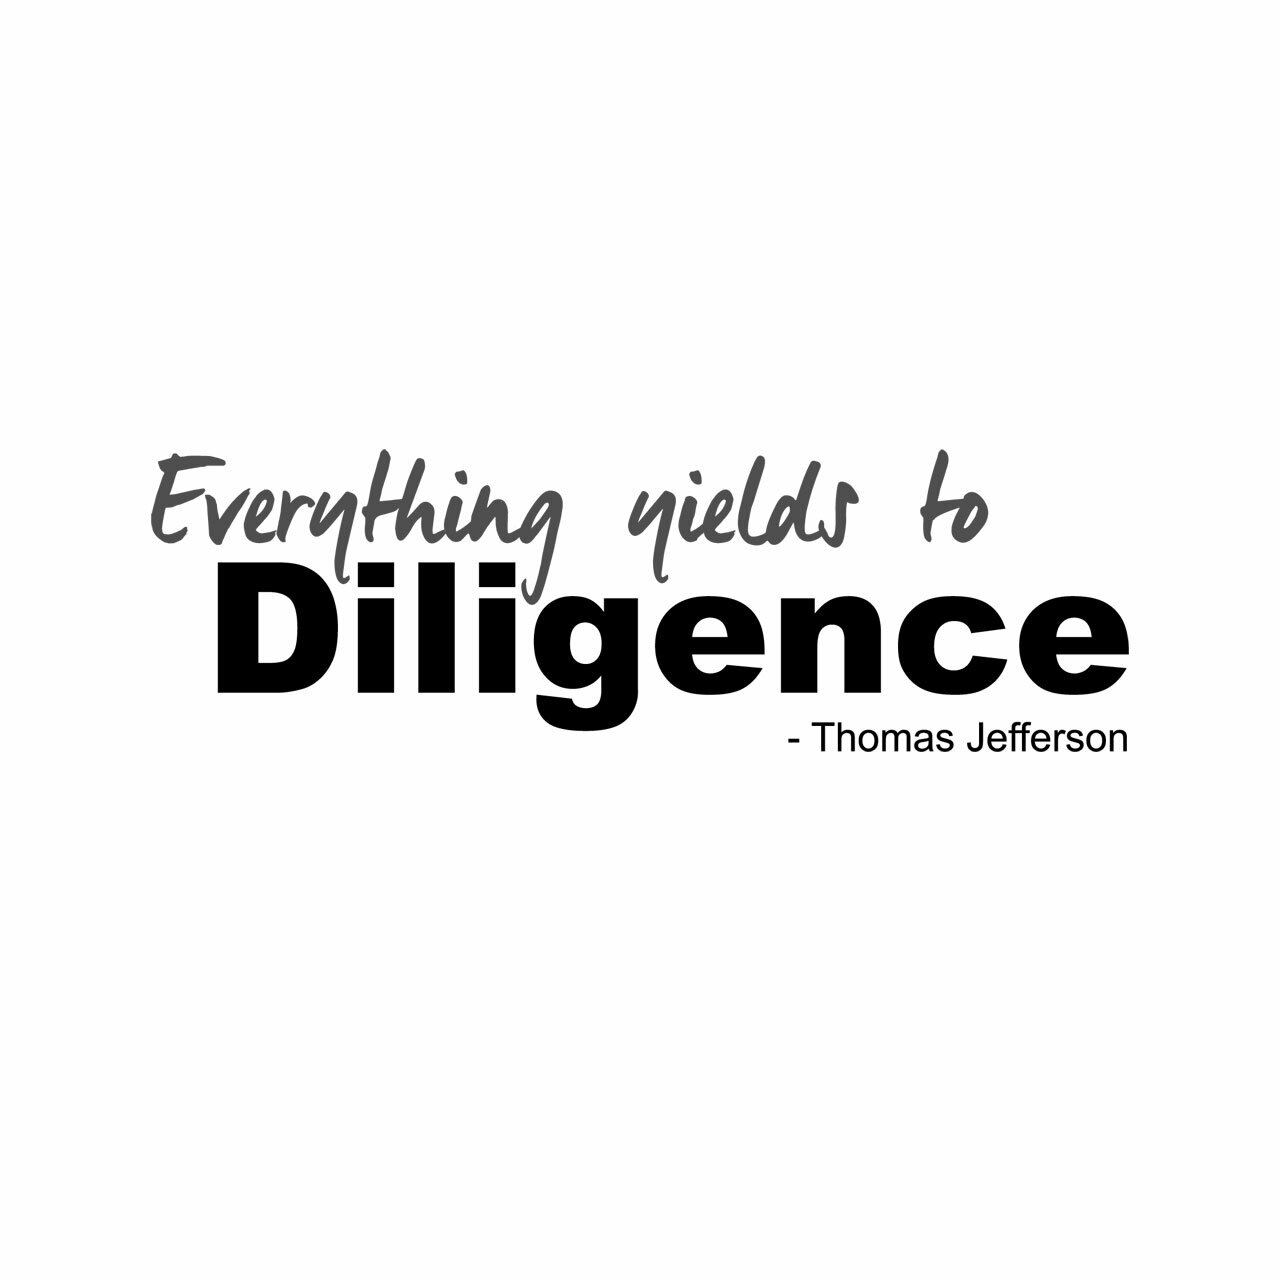 Everything yields to Diligence. -Thomas Jefferson written in grey and black on a white background